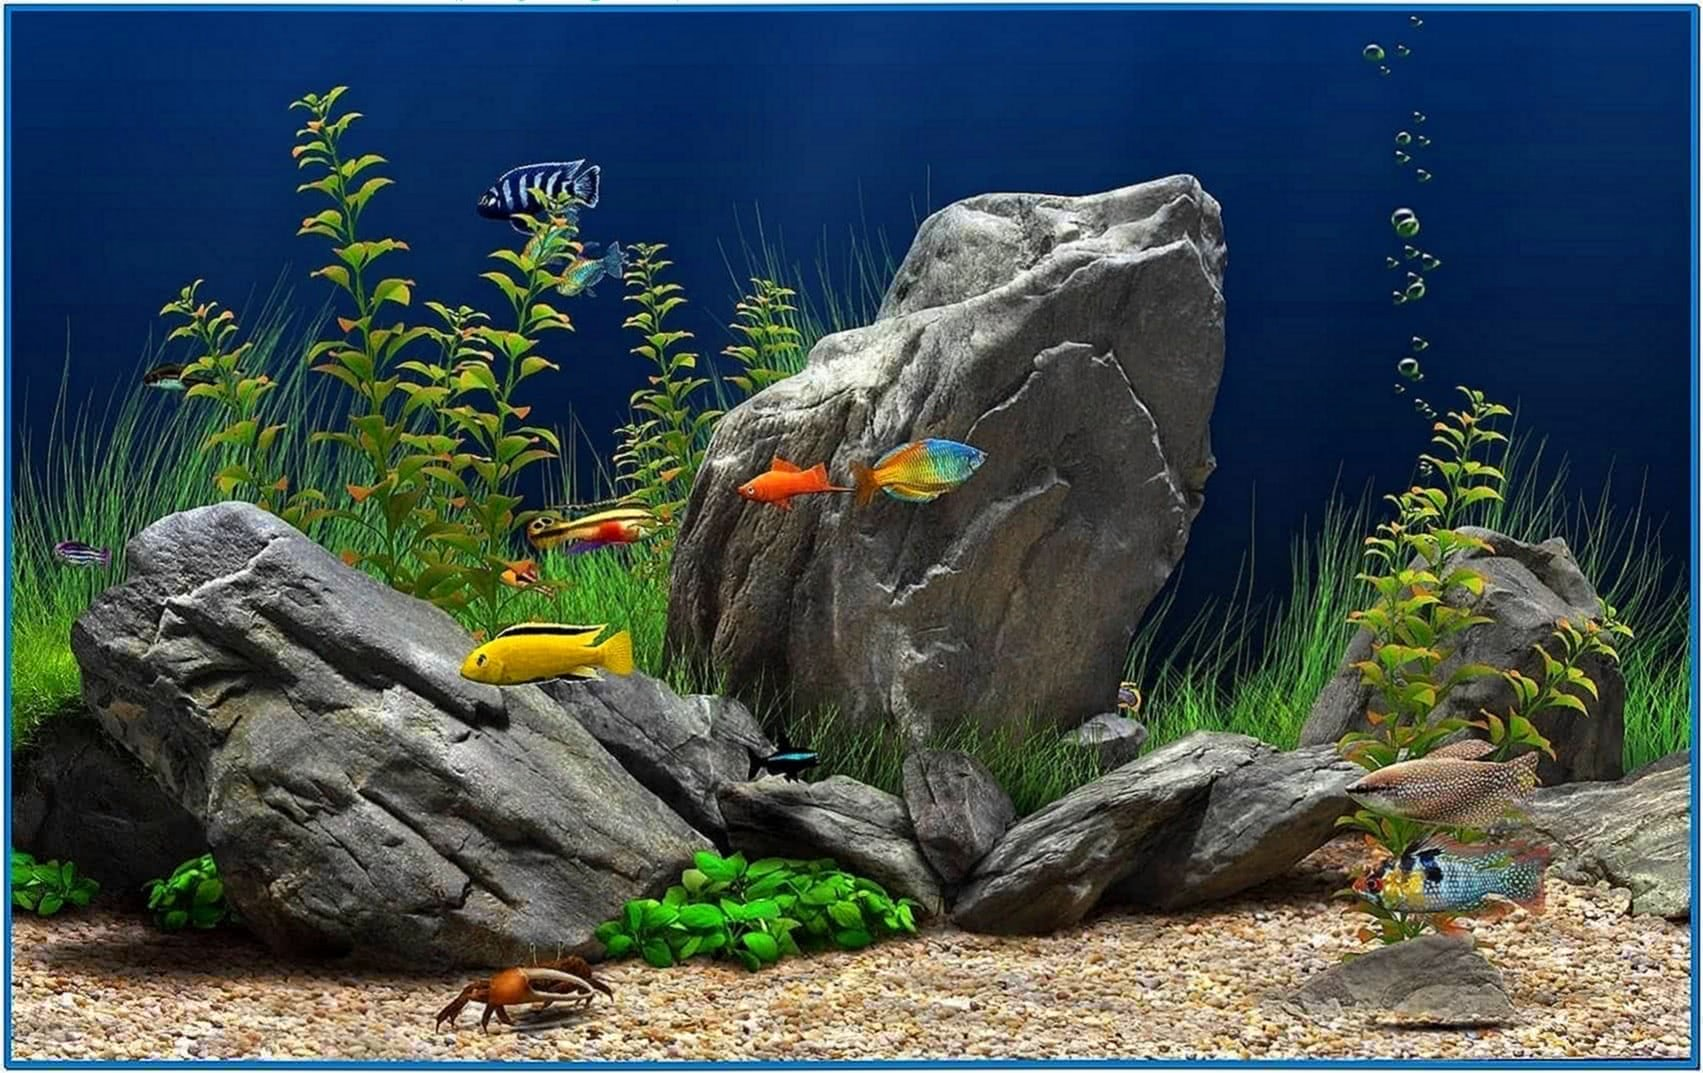 Dream Aquarium Screensaver 1.1090